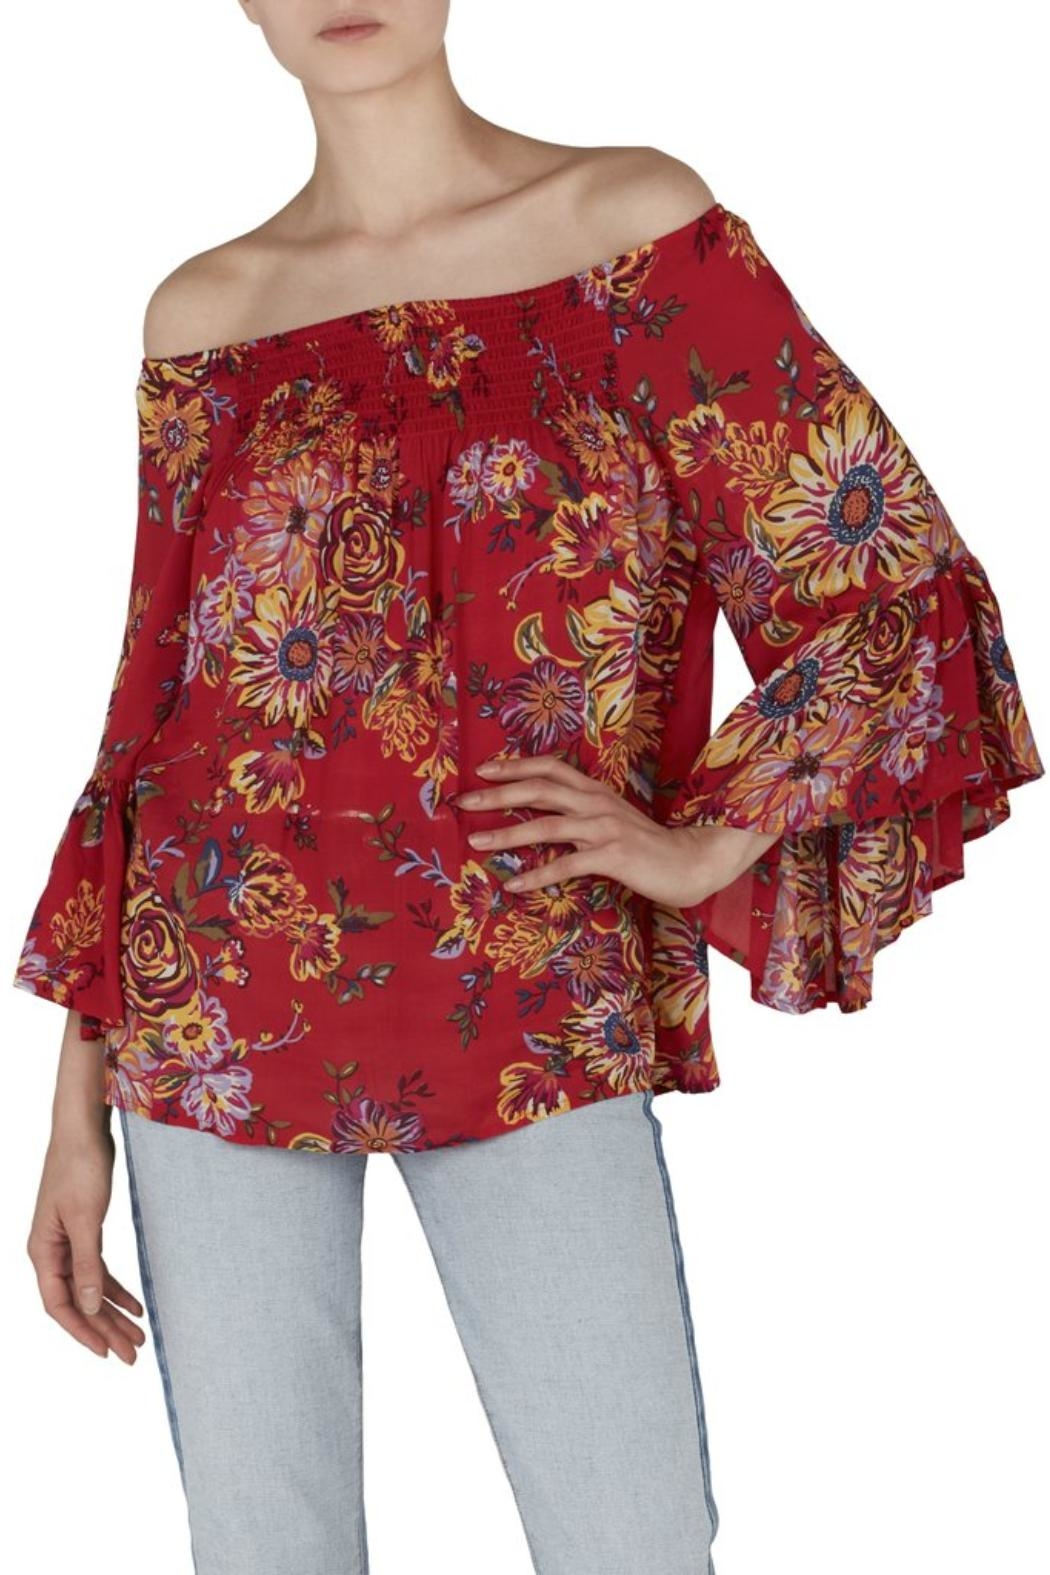 45815bc5d3 Beach Lunch Lounge Floral Smocked Top from Westhampton Beach by Chic ...